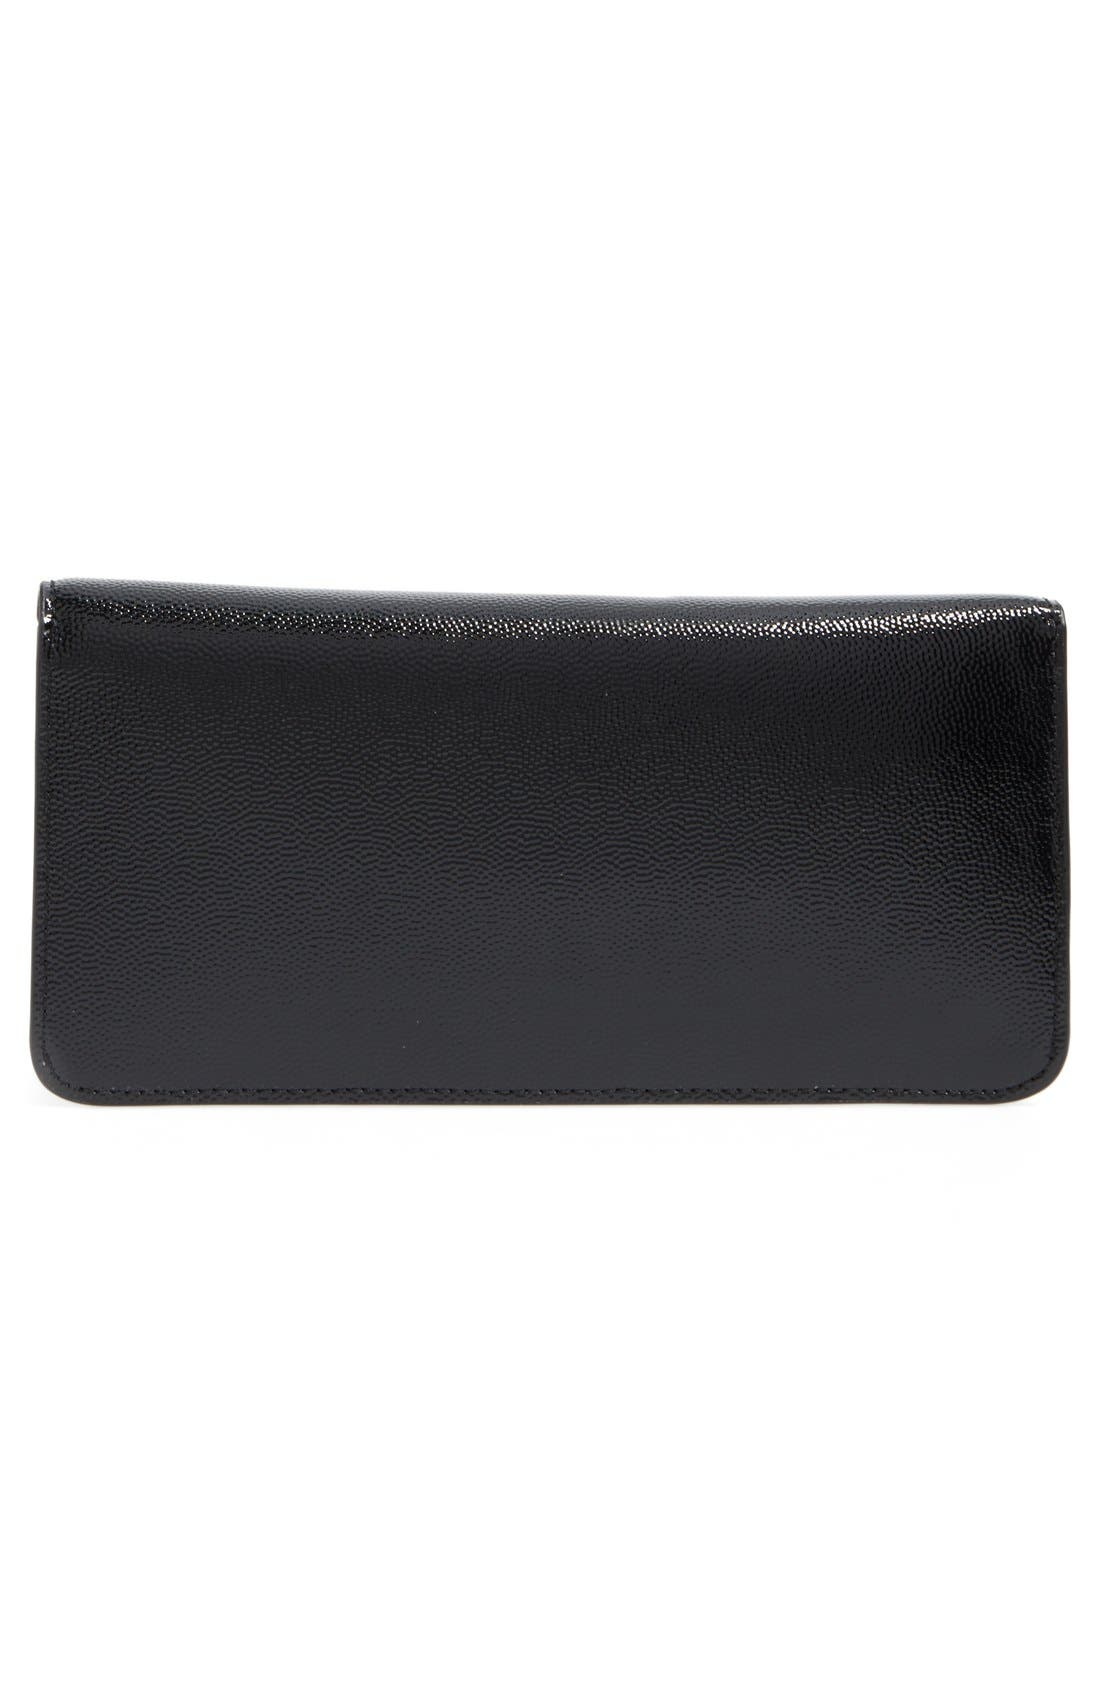 Alternate Image 3  - Tory Burch Gigi Caviar Leather Clutch